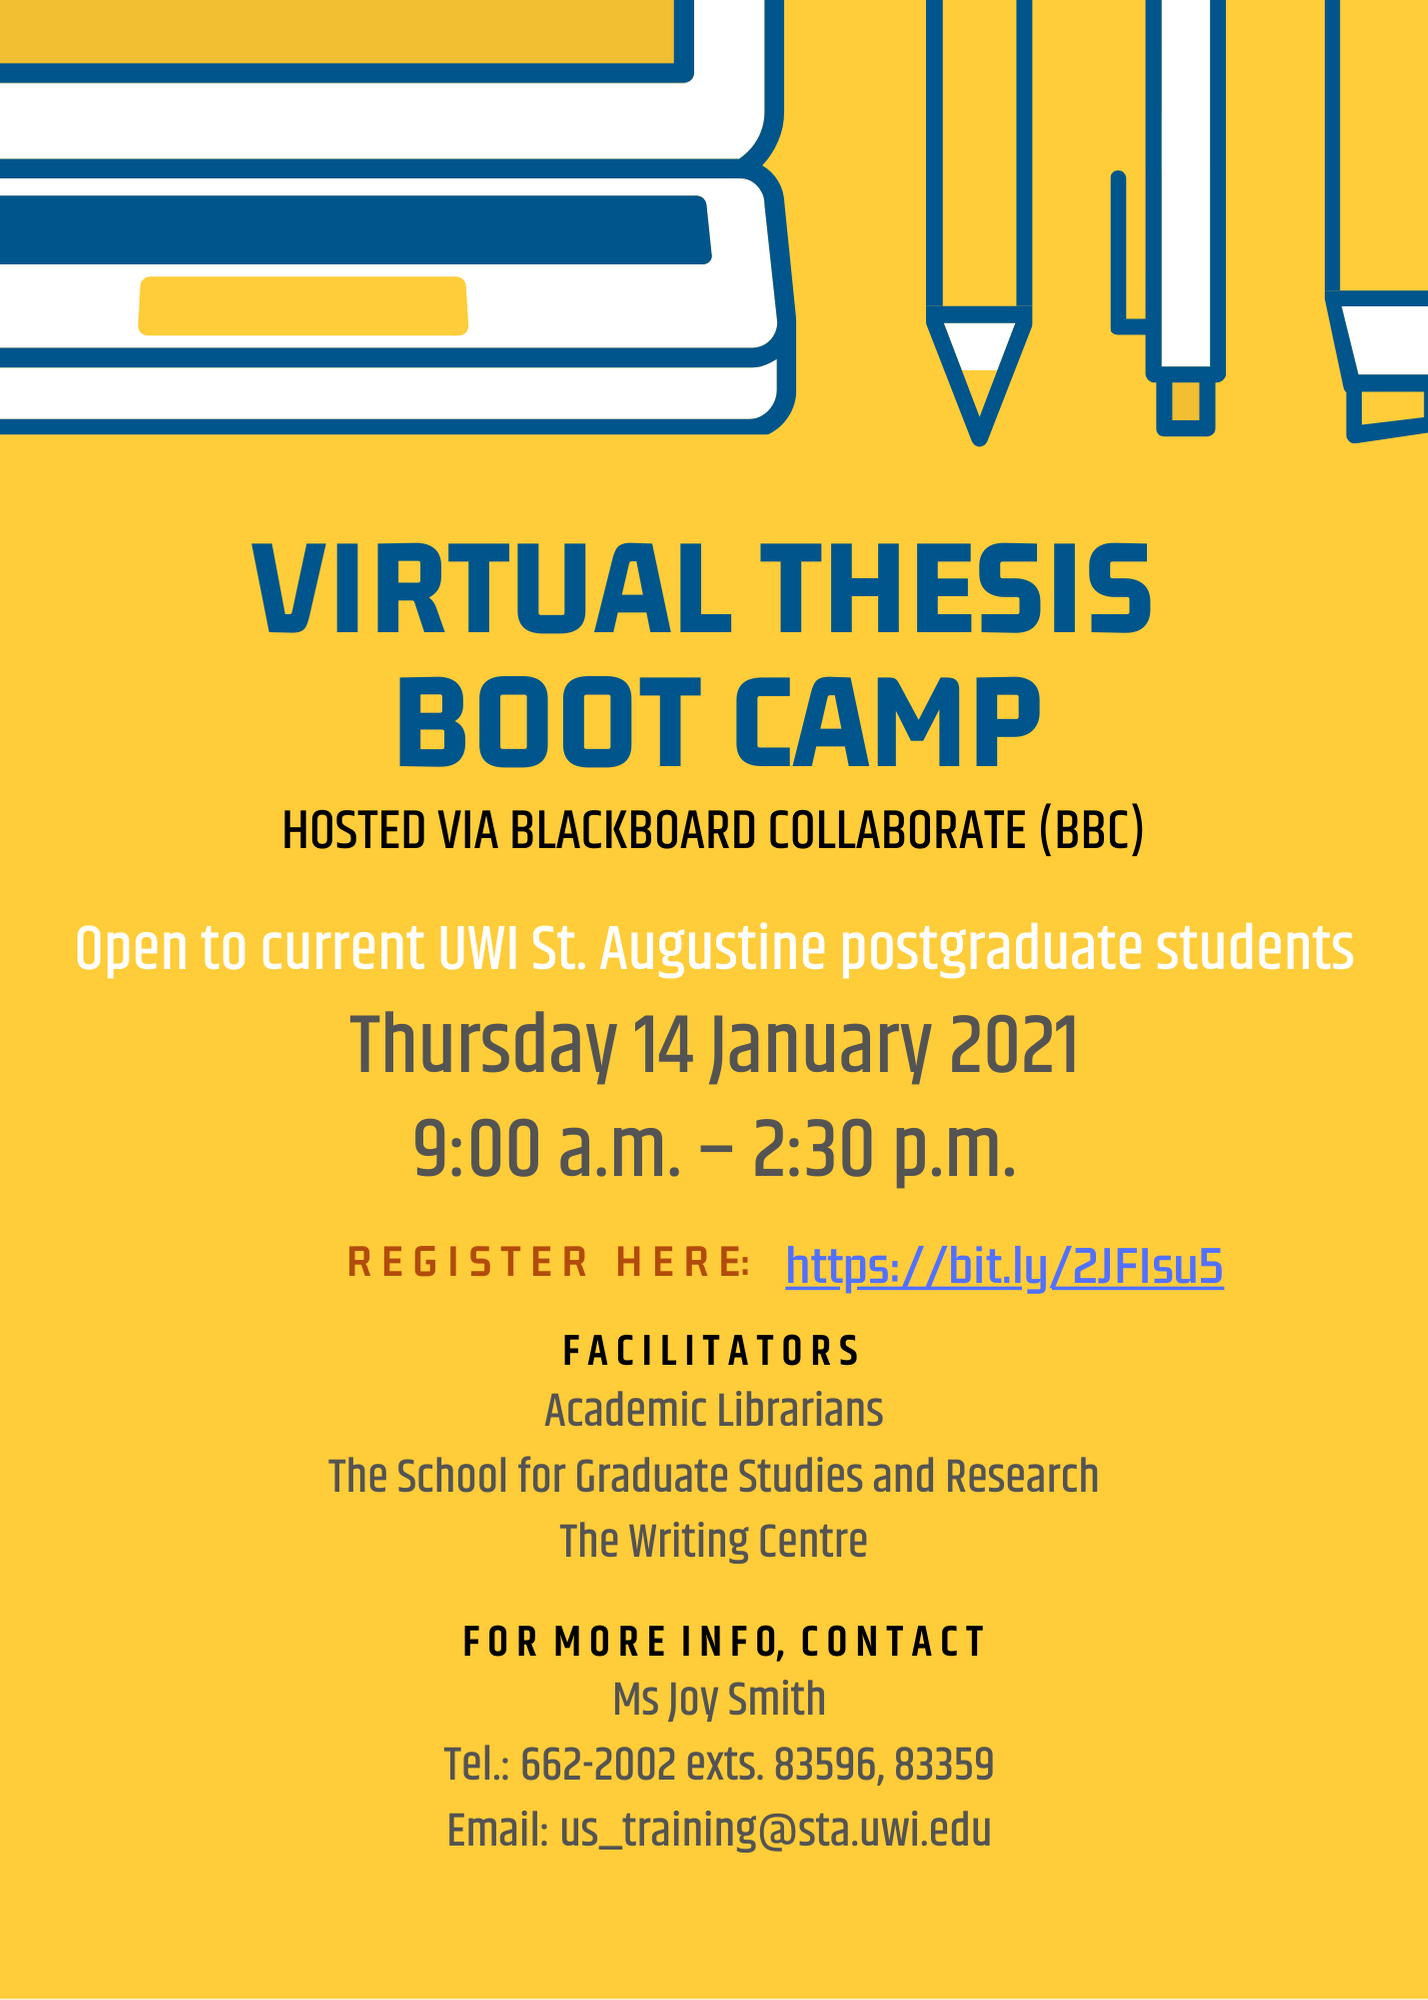 Thesis Boot Camp 2021 Flyer